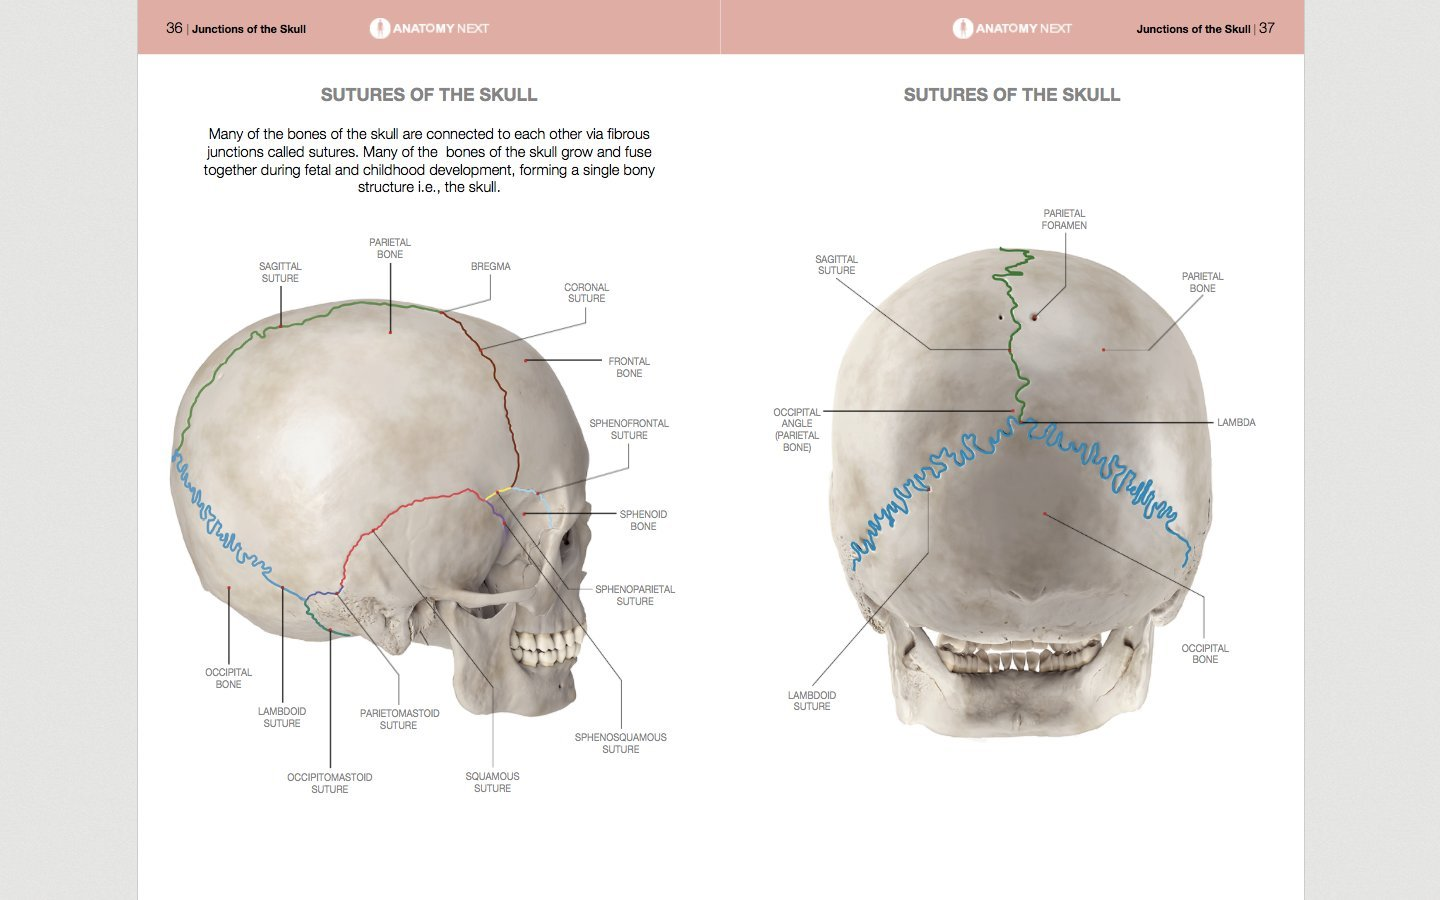 Visual Guide To The Anatomy Of The Skull Reinis Jansons